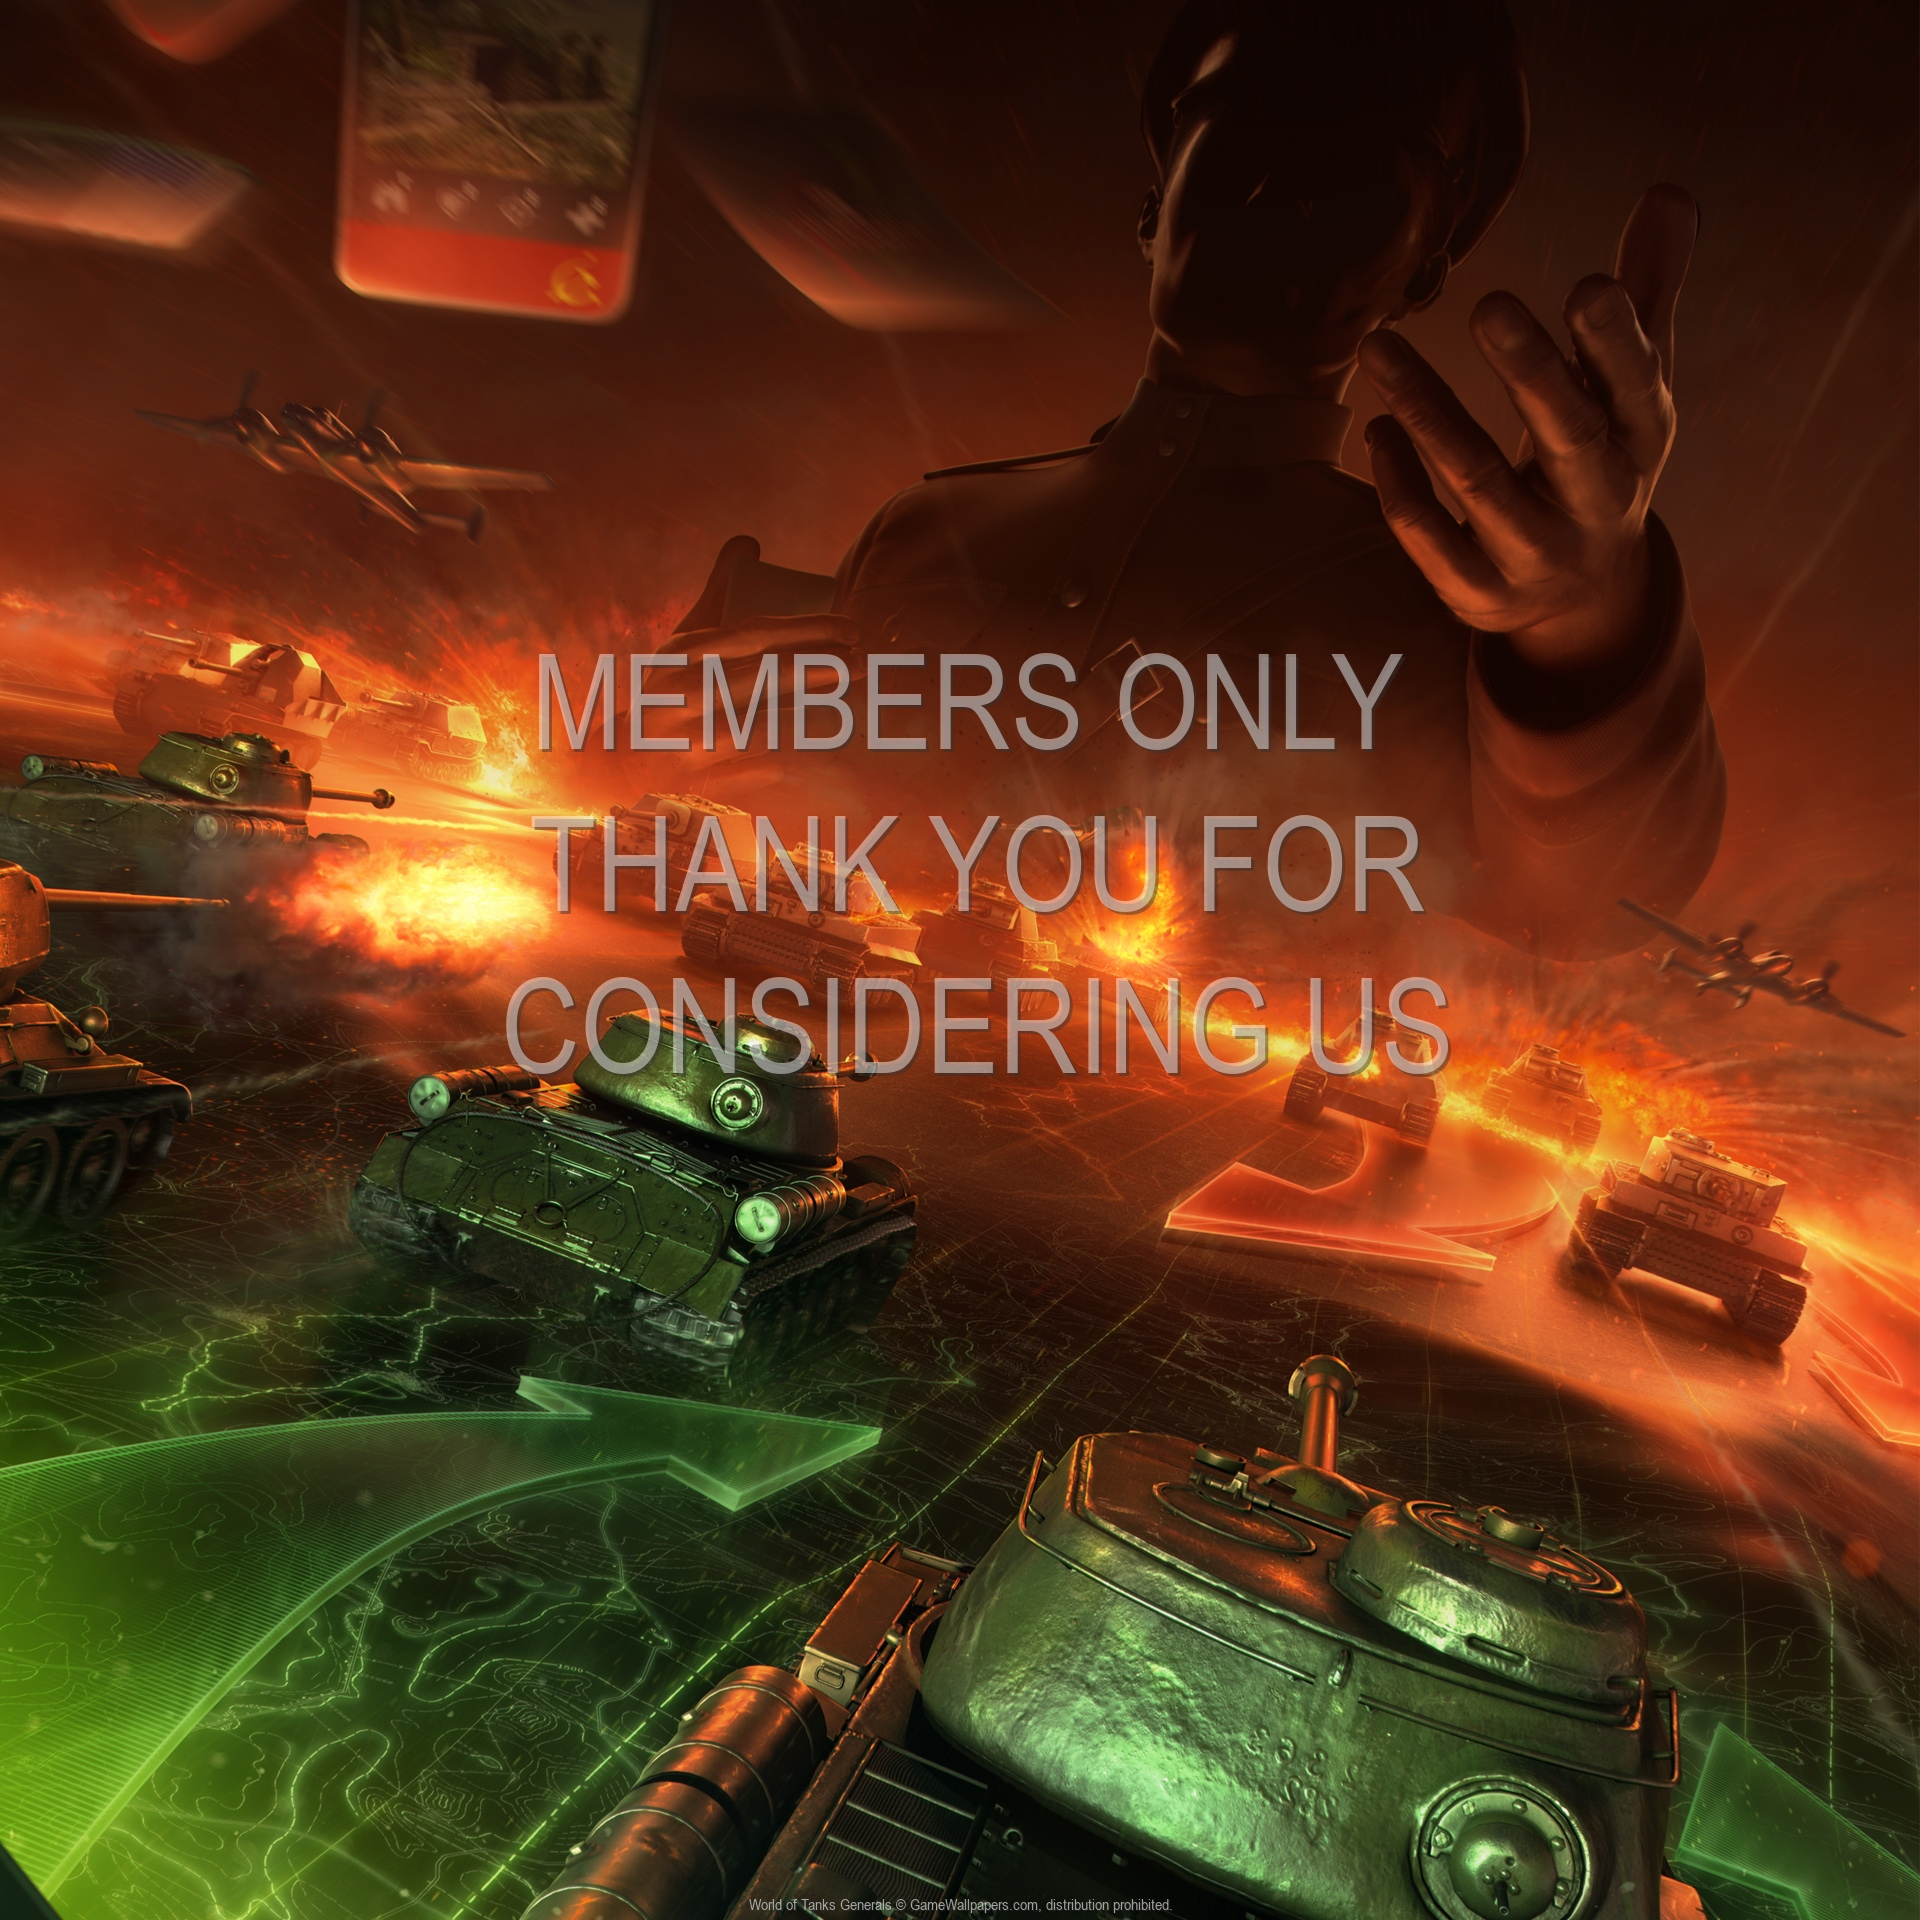 World of Tanks: Generals 1920x1080 Handy Hintergrundbild 01